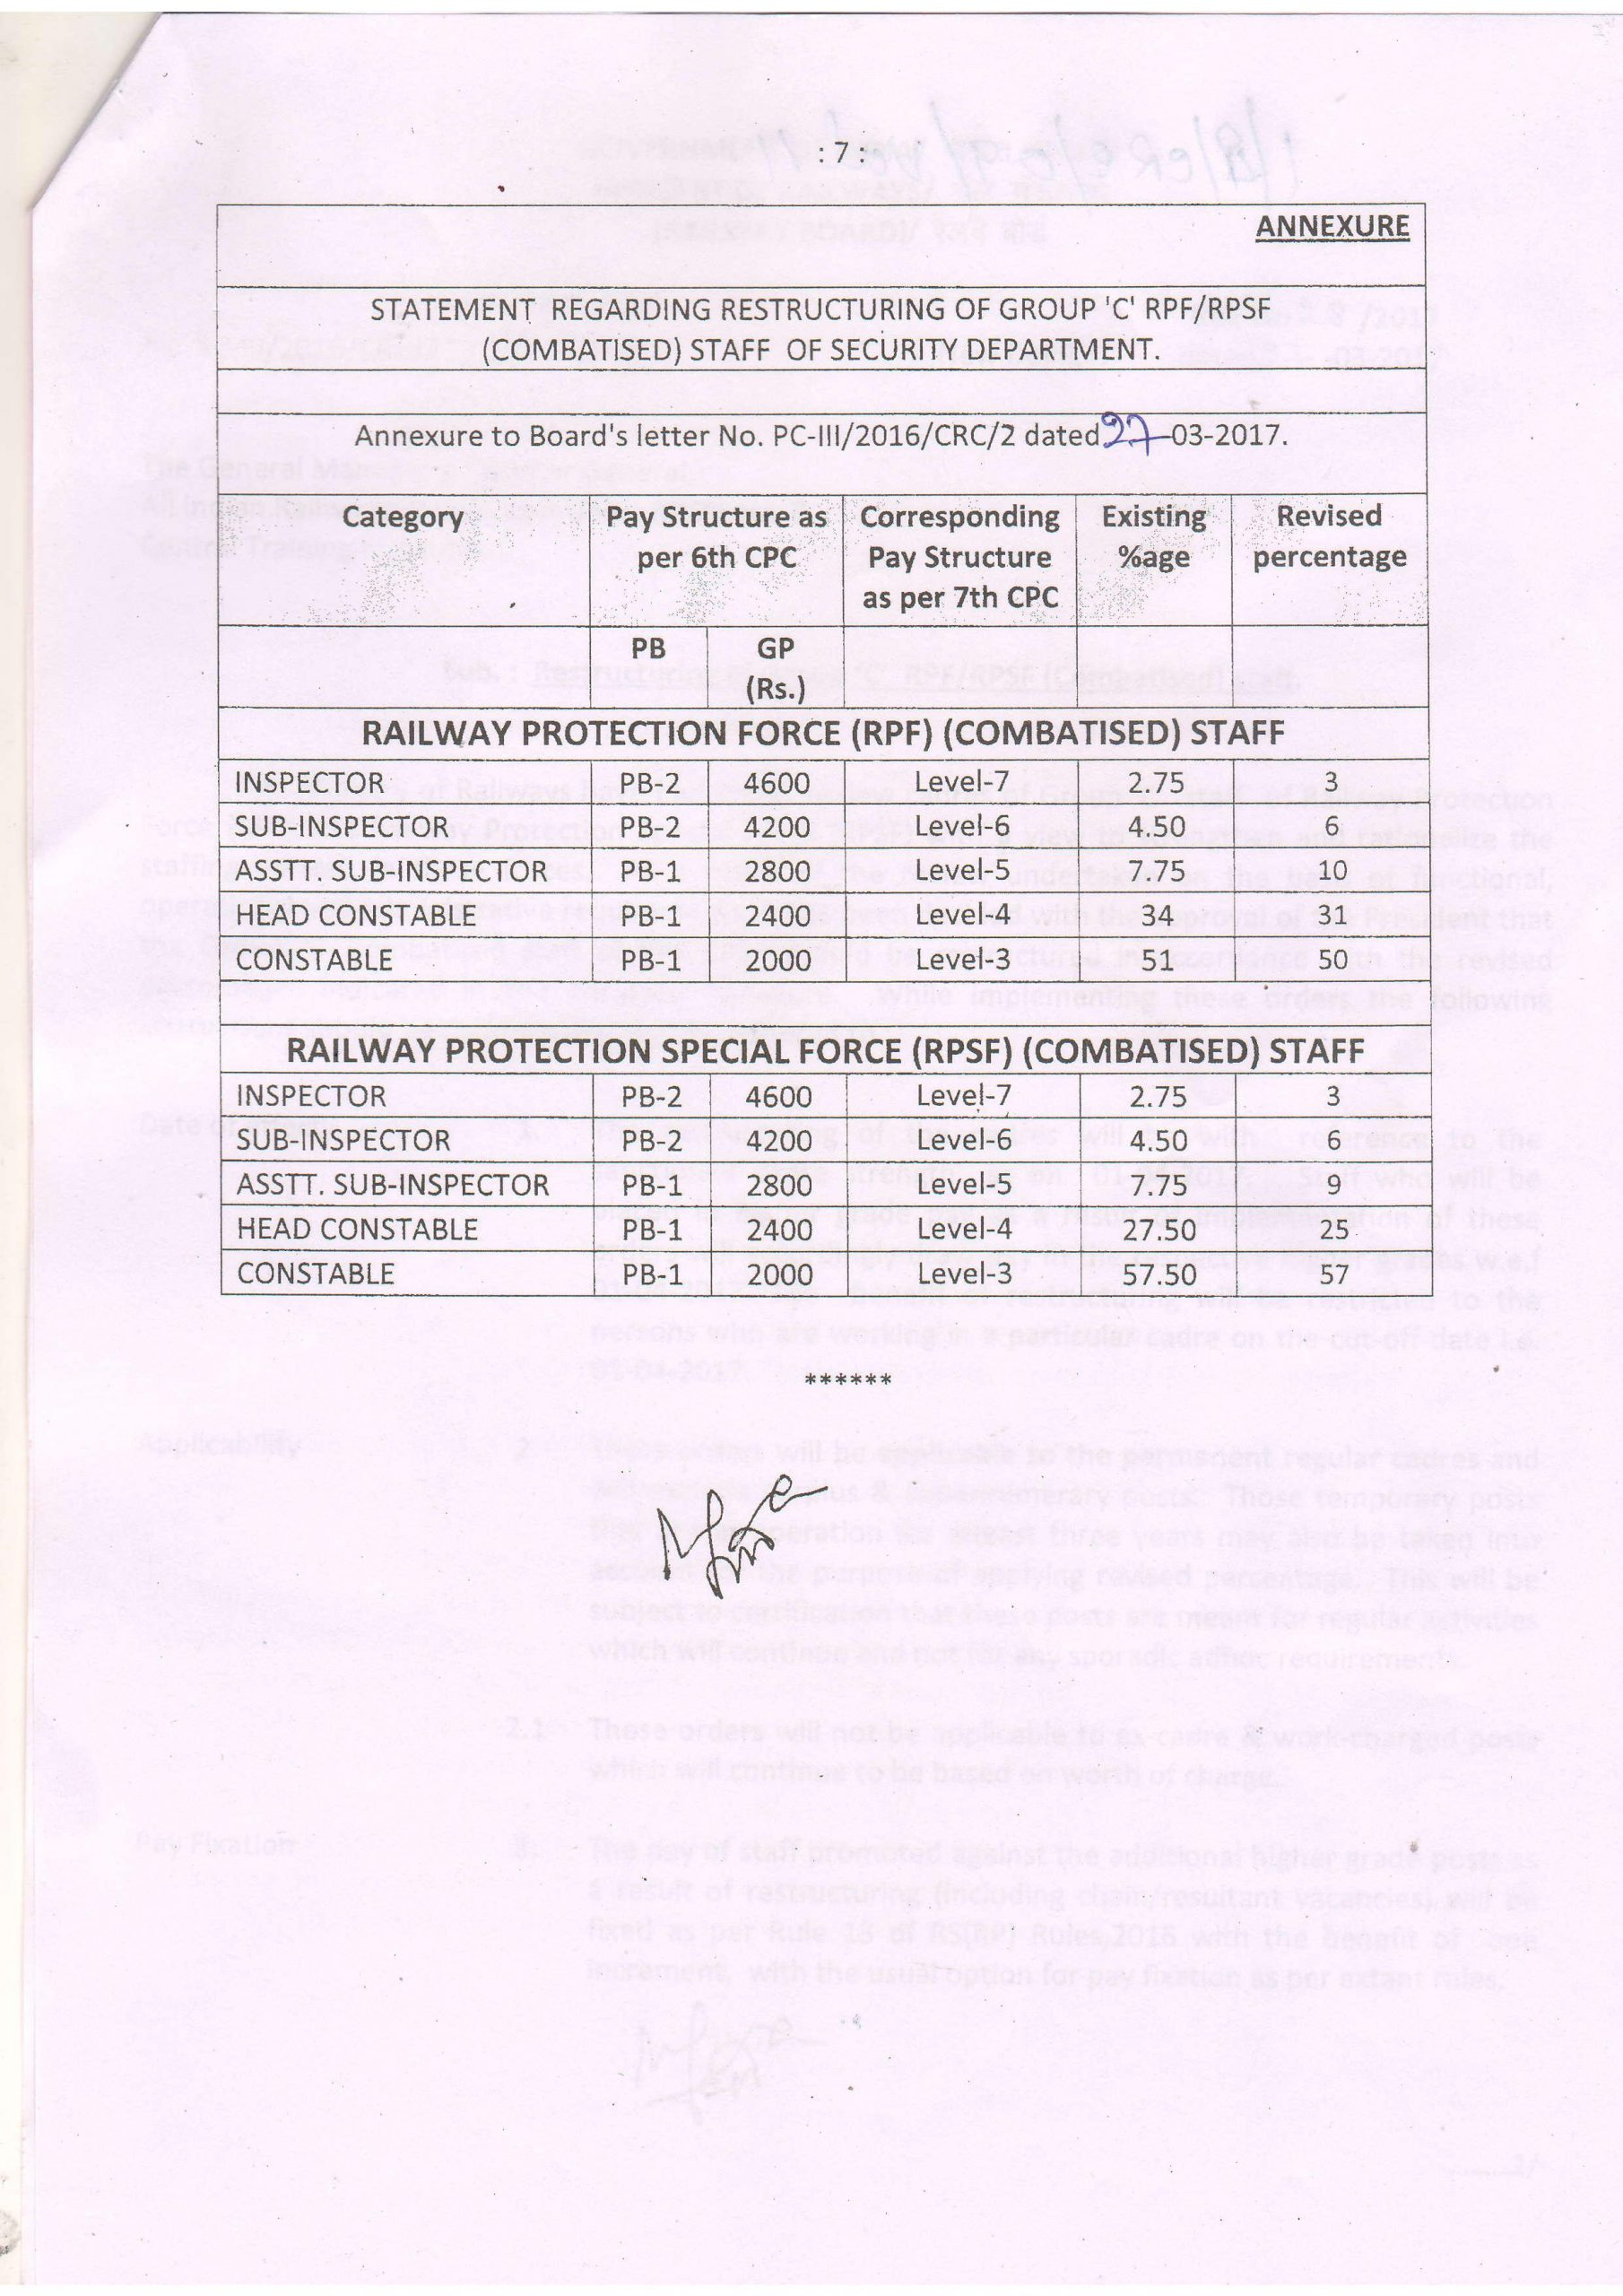 Restructuring Of Group C Rpf Rpsf Combatised Staff